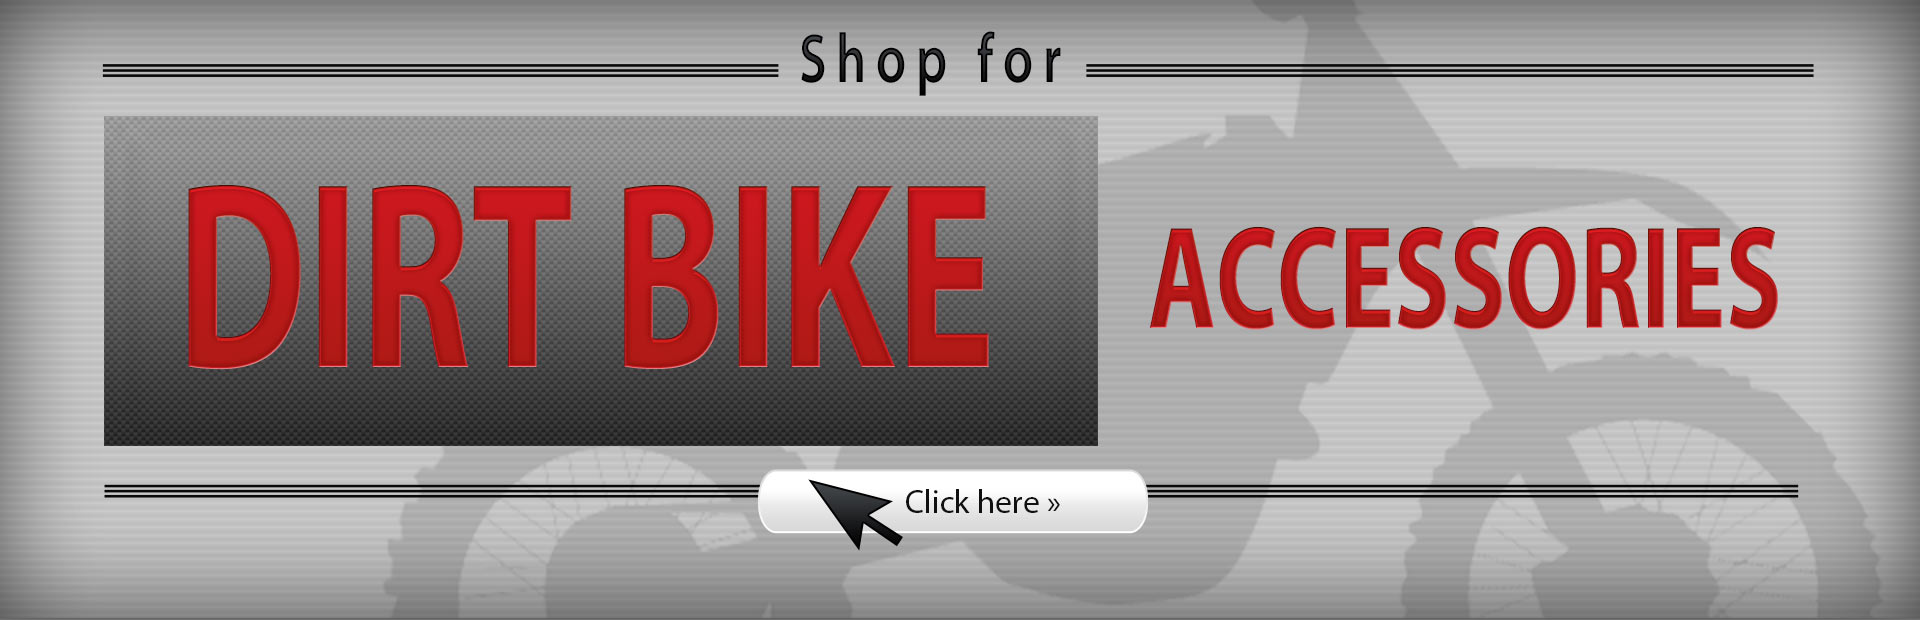 Click here to shop for dirt bike accessories!